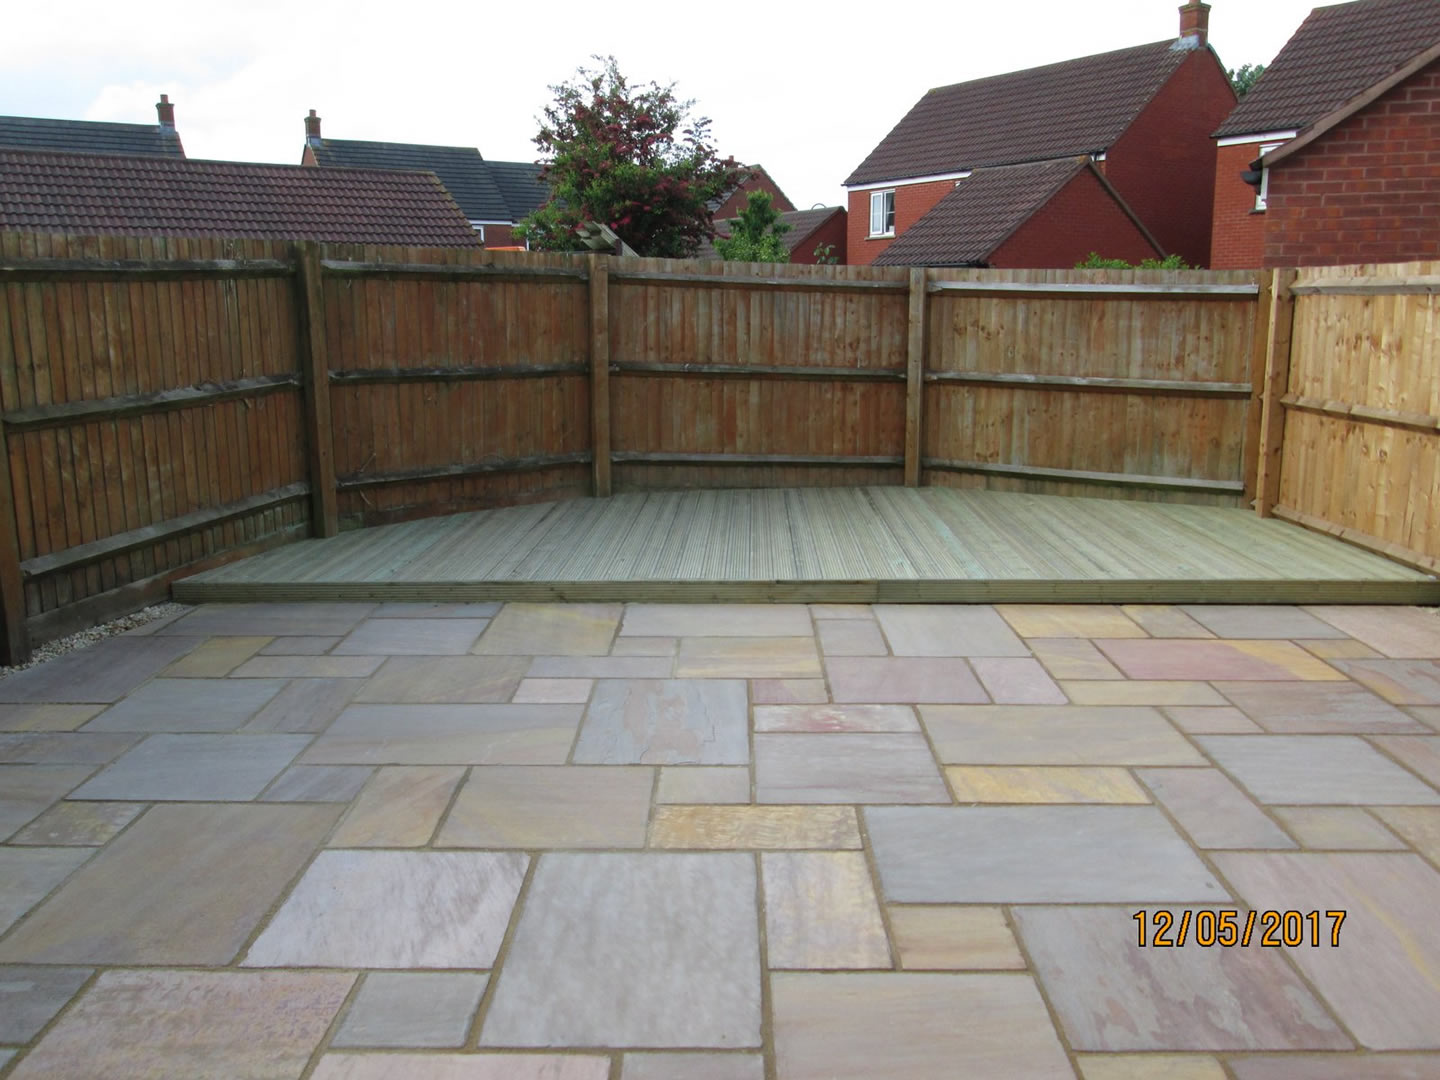 Garden Patio & Paving - 4S01